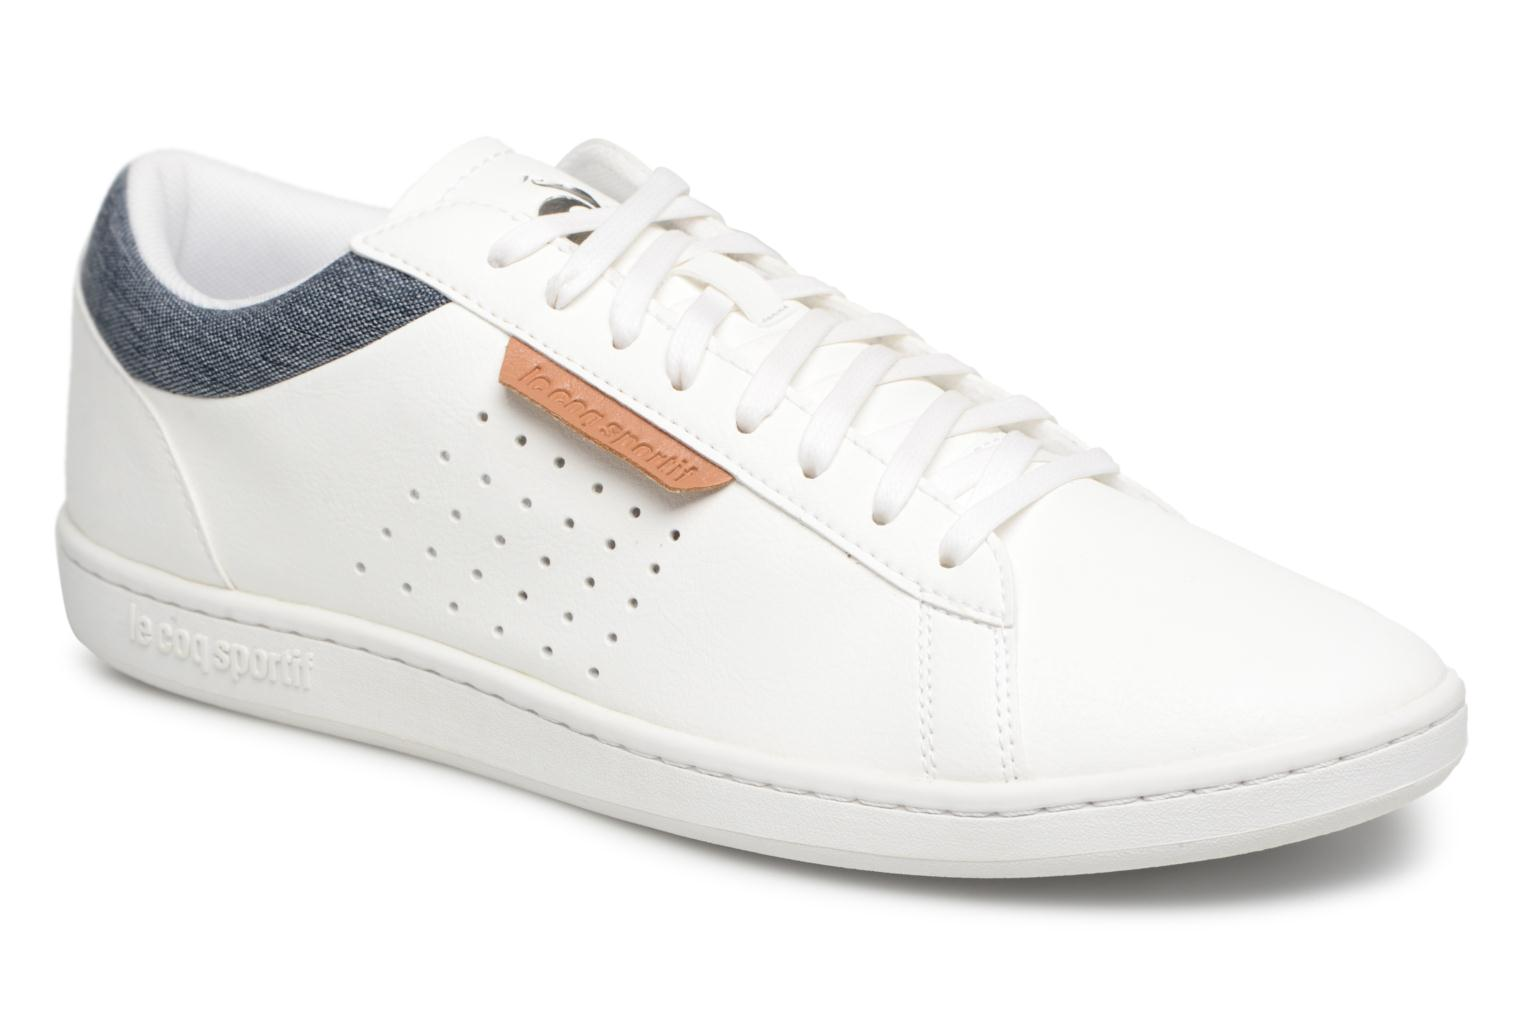 Coq Courtset Sportif Blue Optical Craft Le White Dress T8zx7Cq